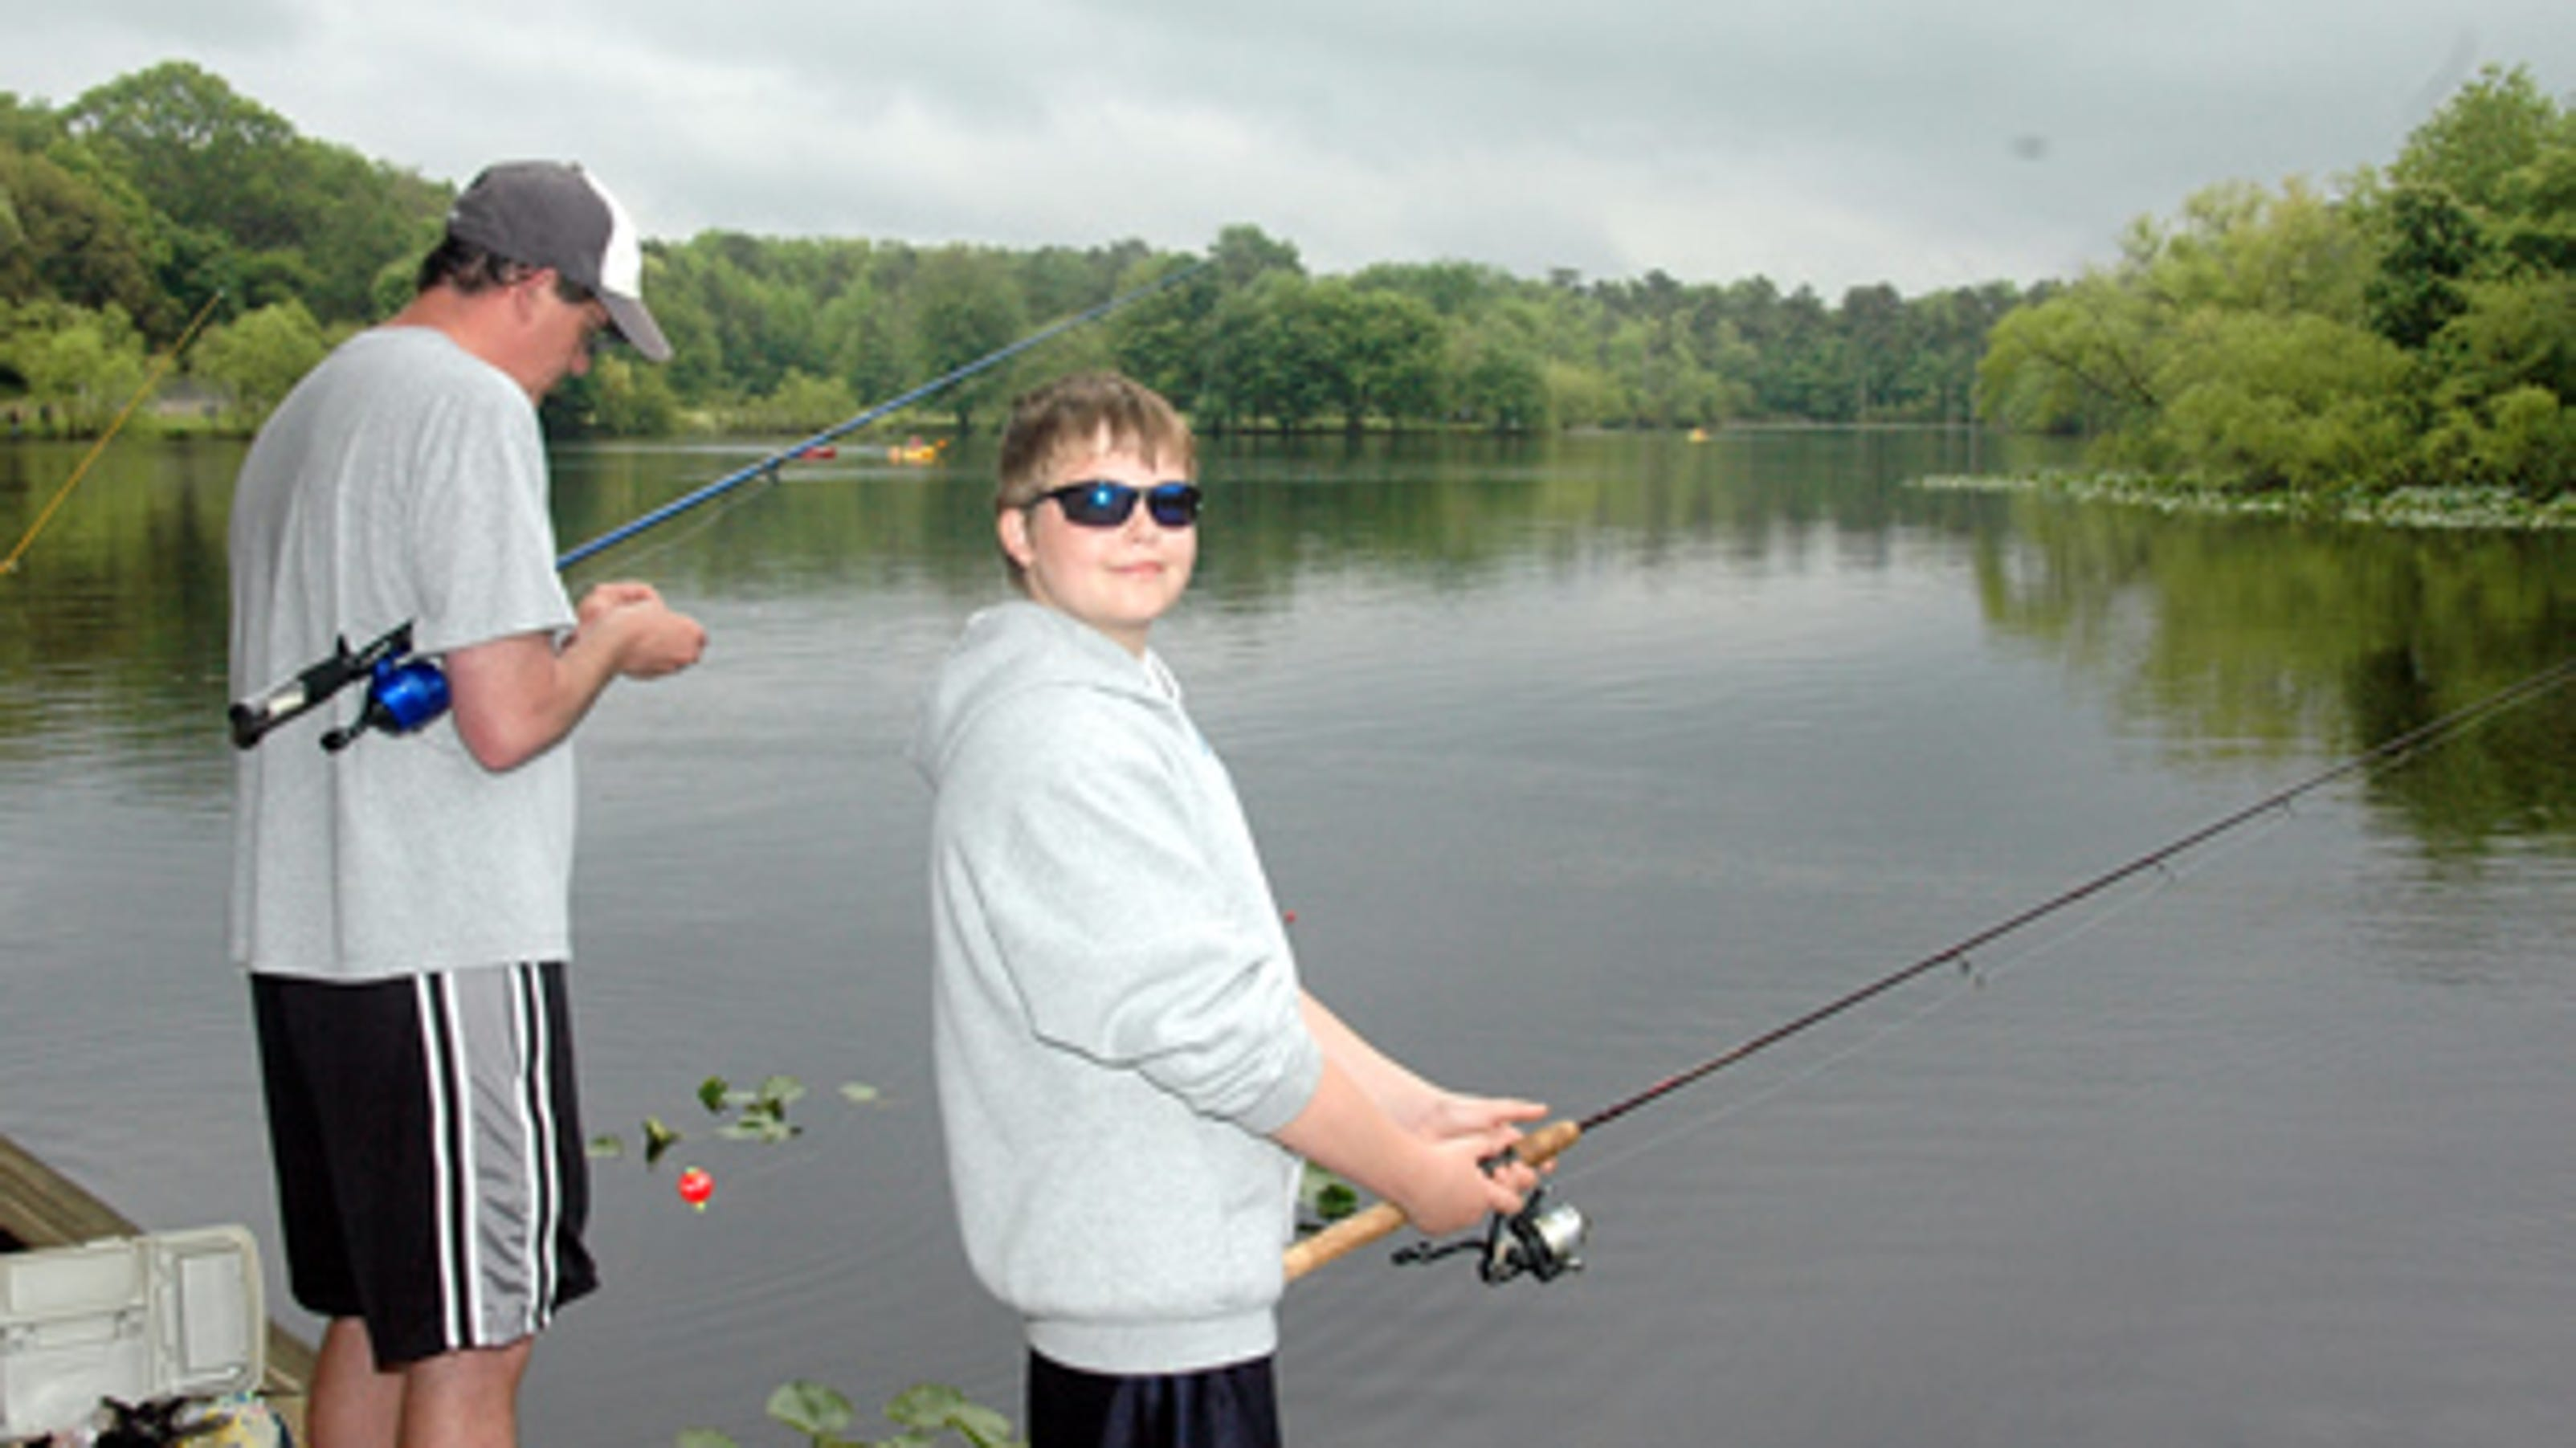 Free fishing days in new jersey father 39 s day weekend for Free fishing day